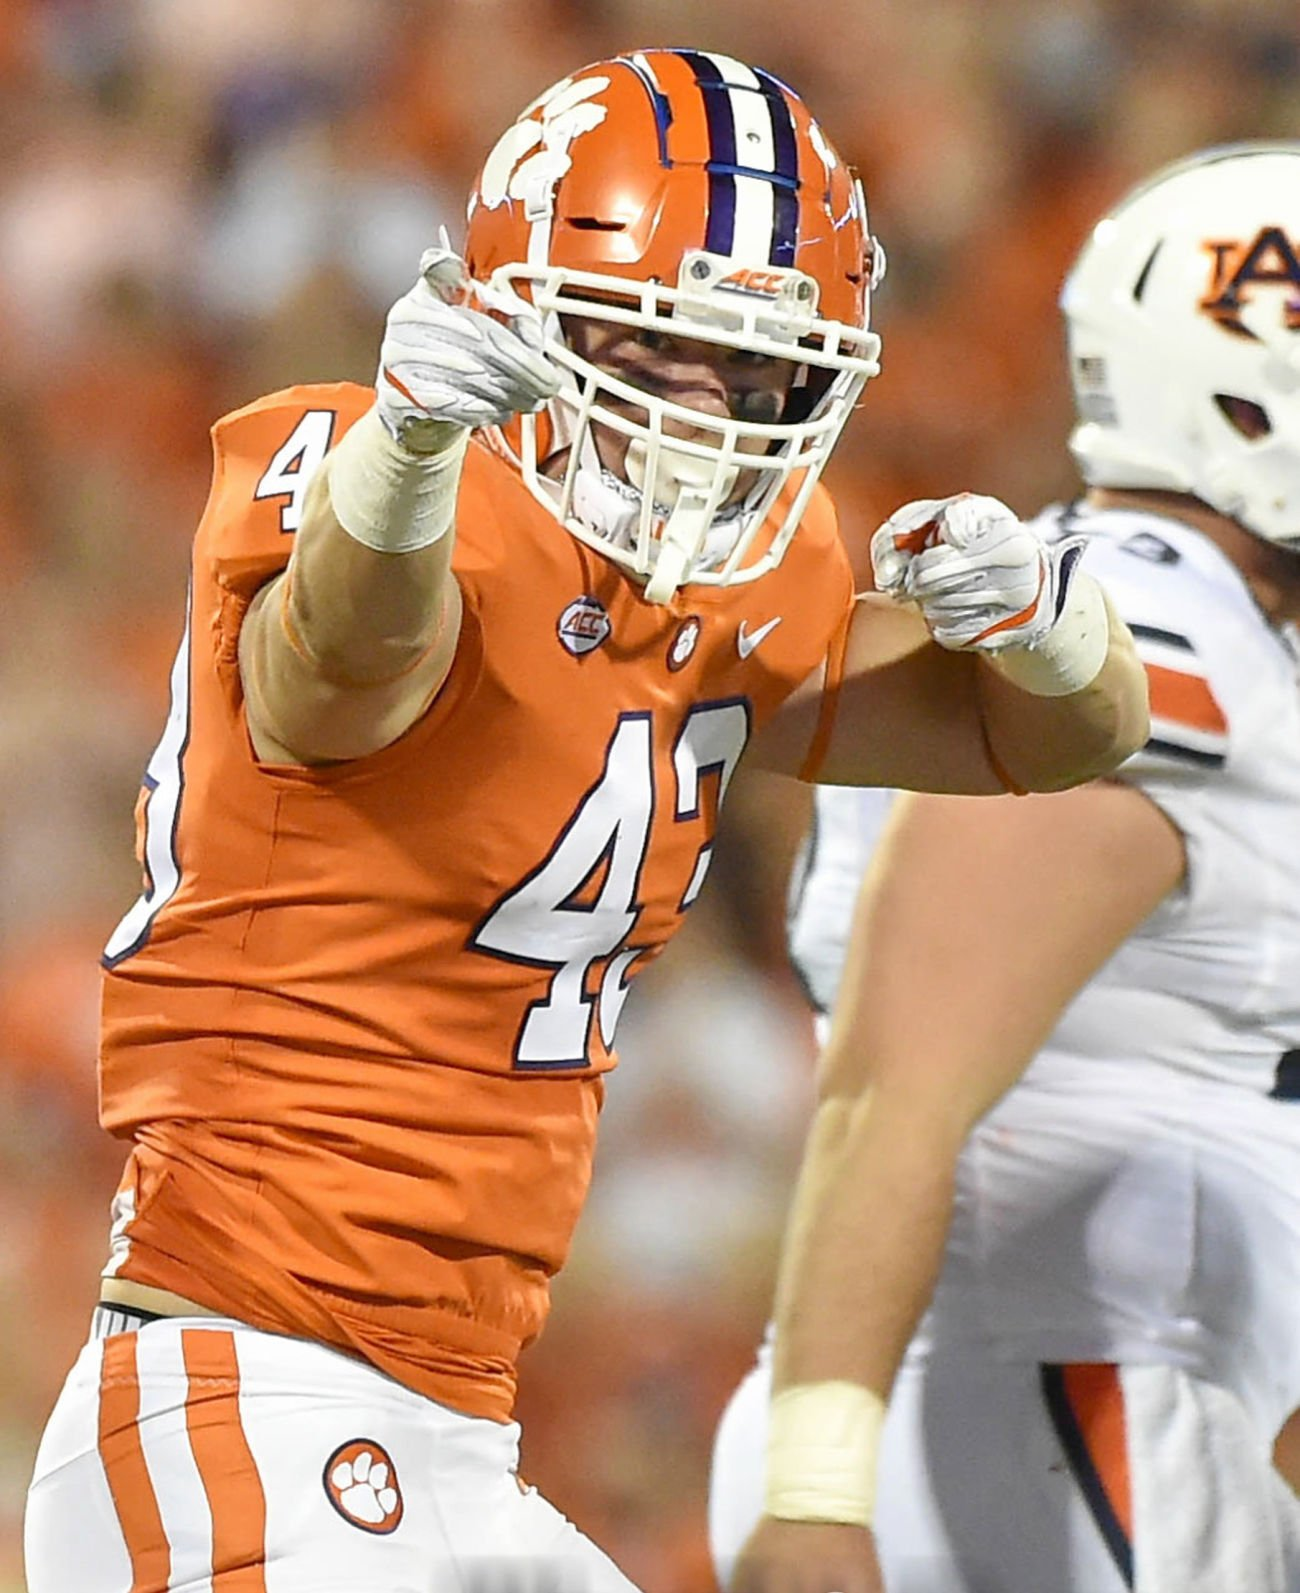 Defense keeps Clemson 2-0, with 14-6 victory over Auburn